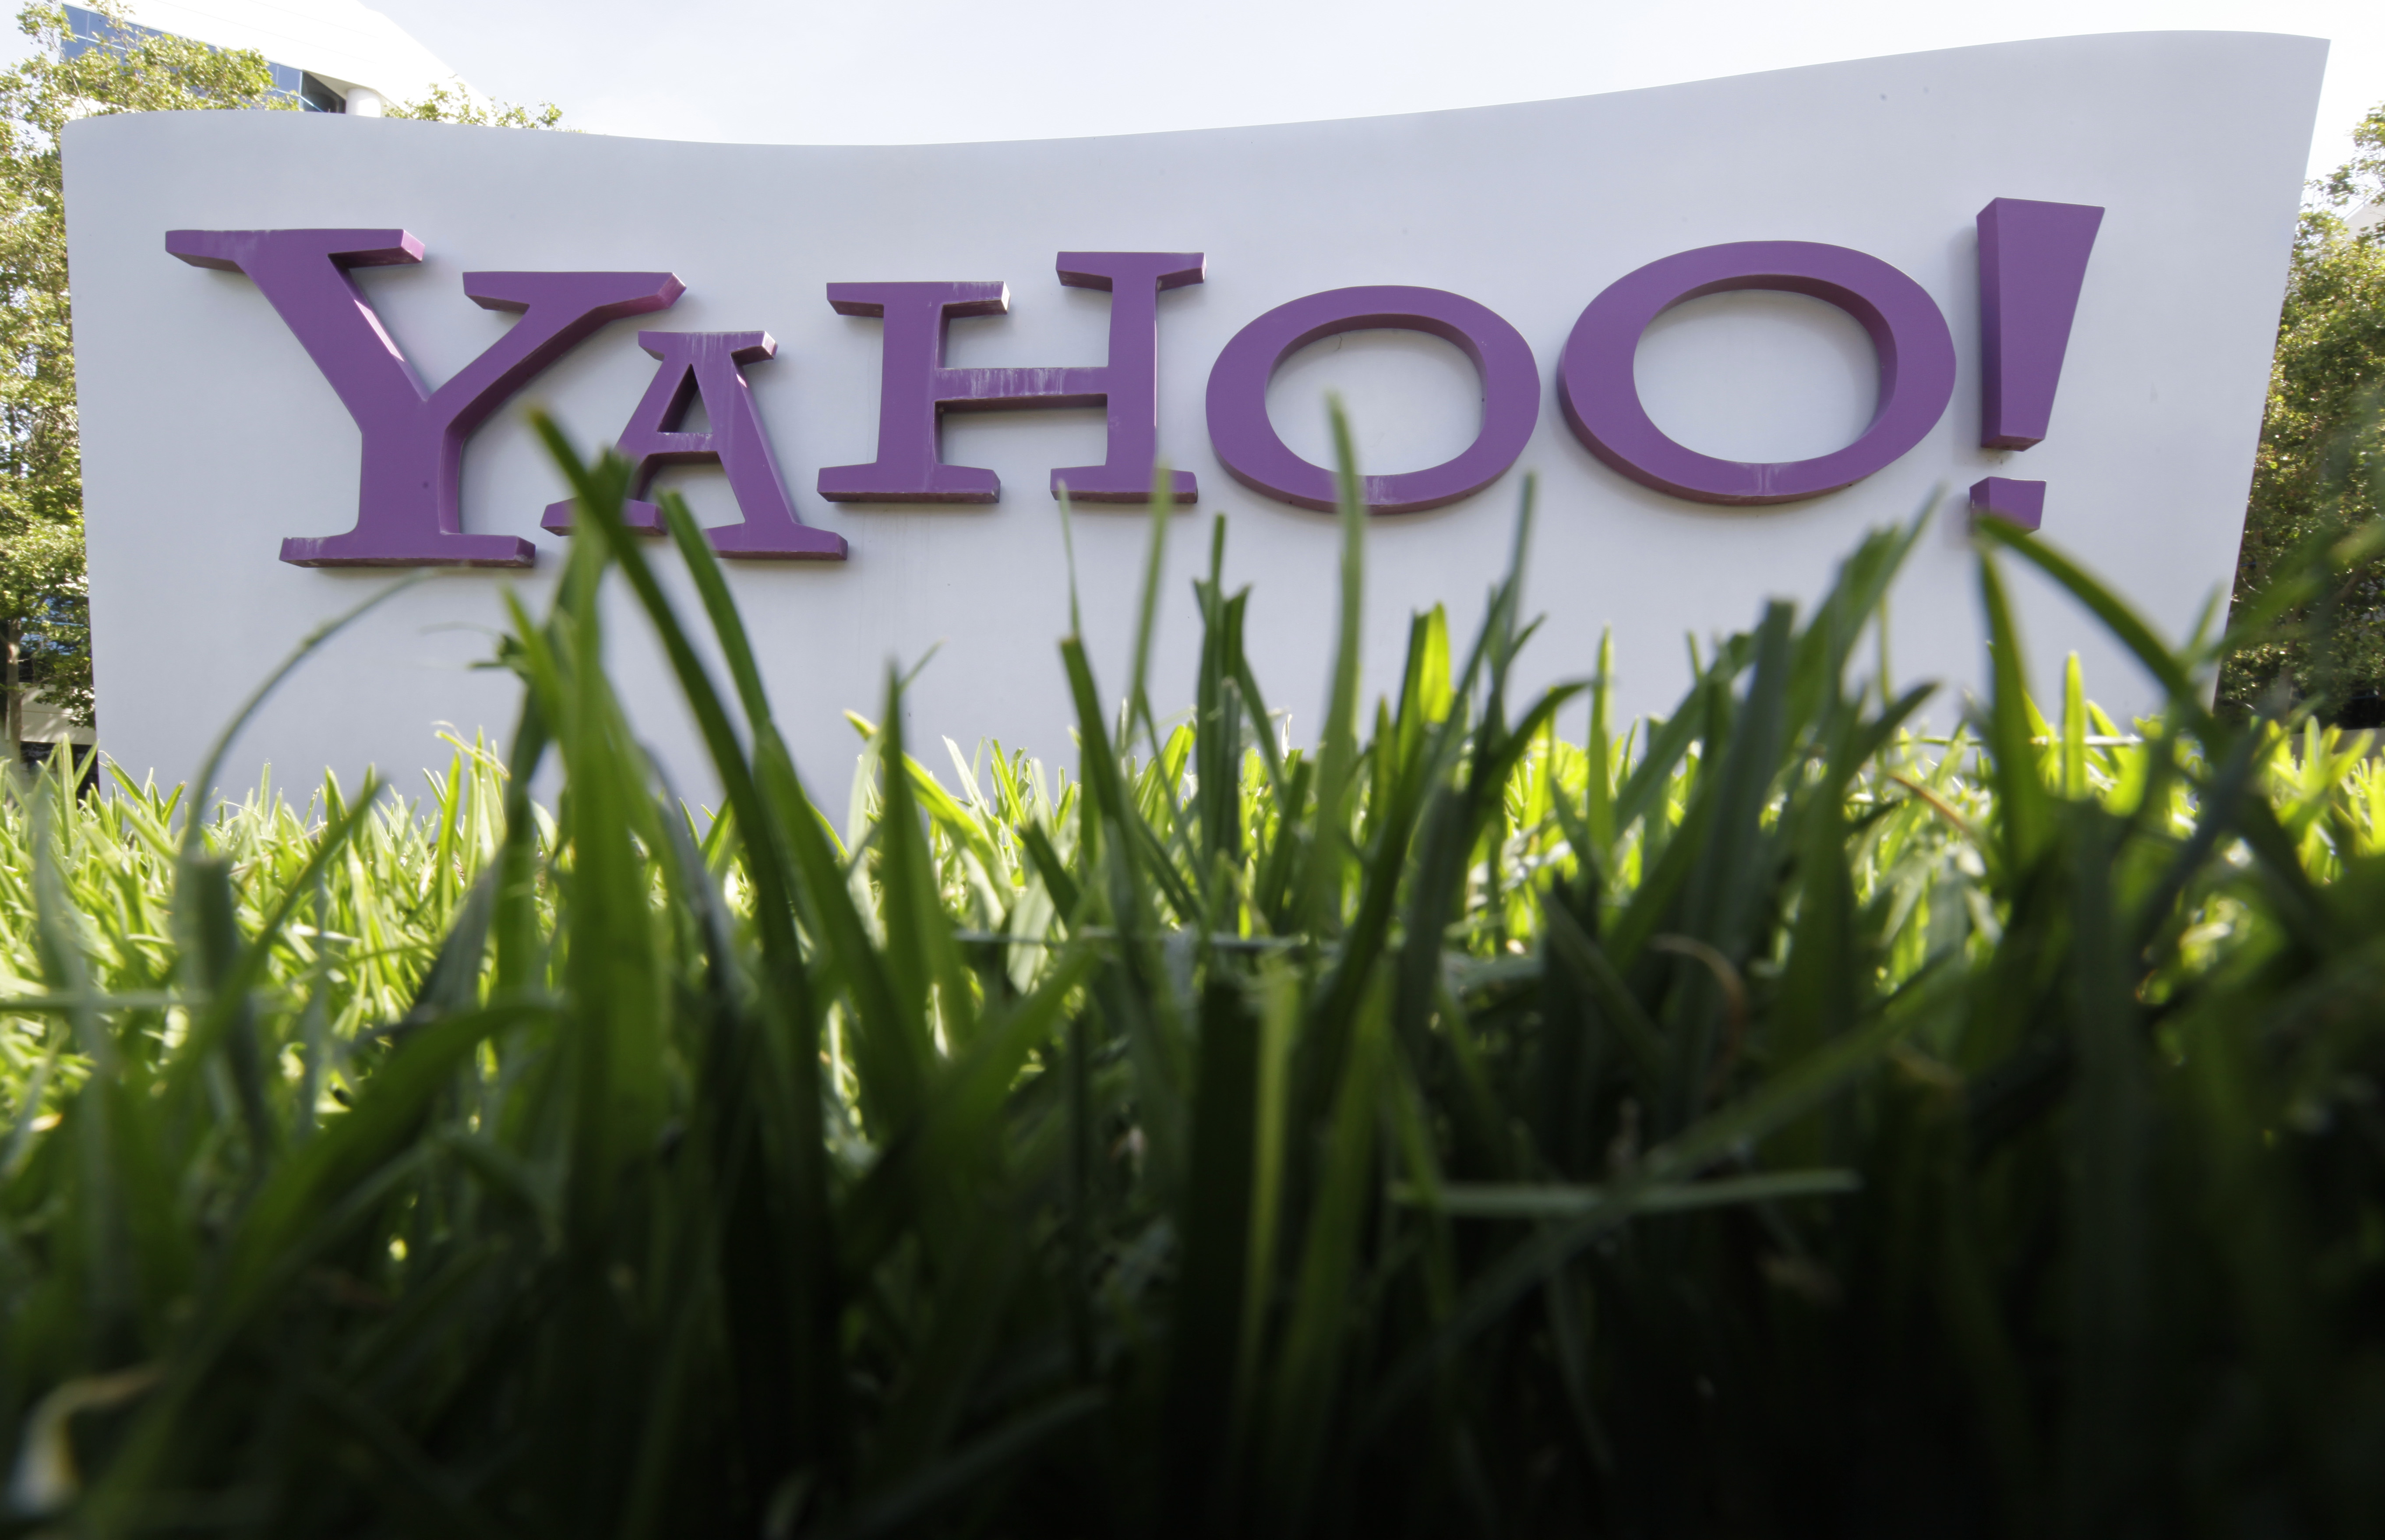 Yahoo security breach settlement: You could get reimbursed up to $25,000